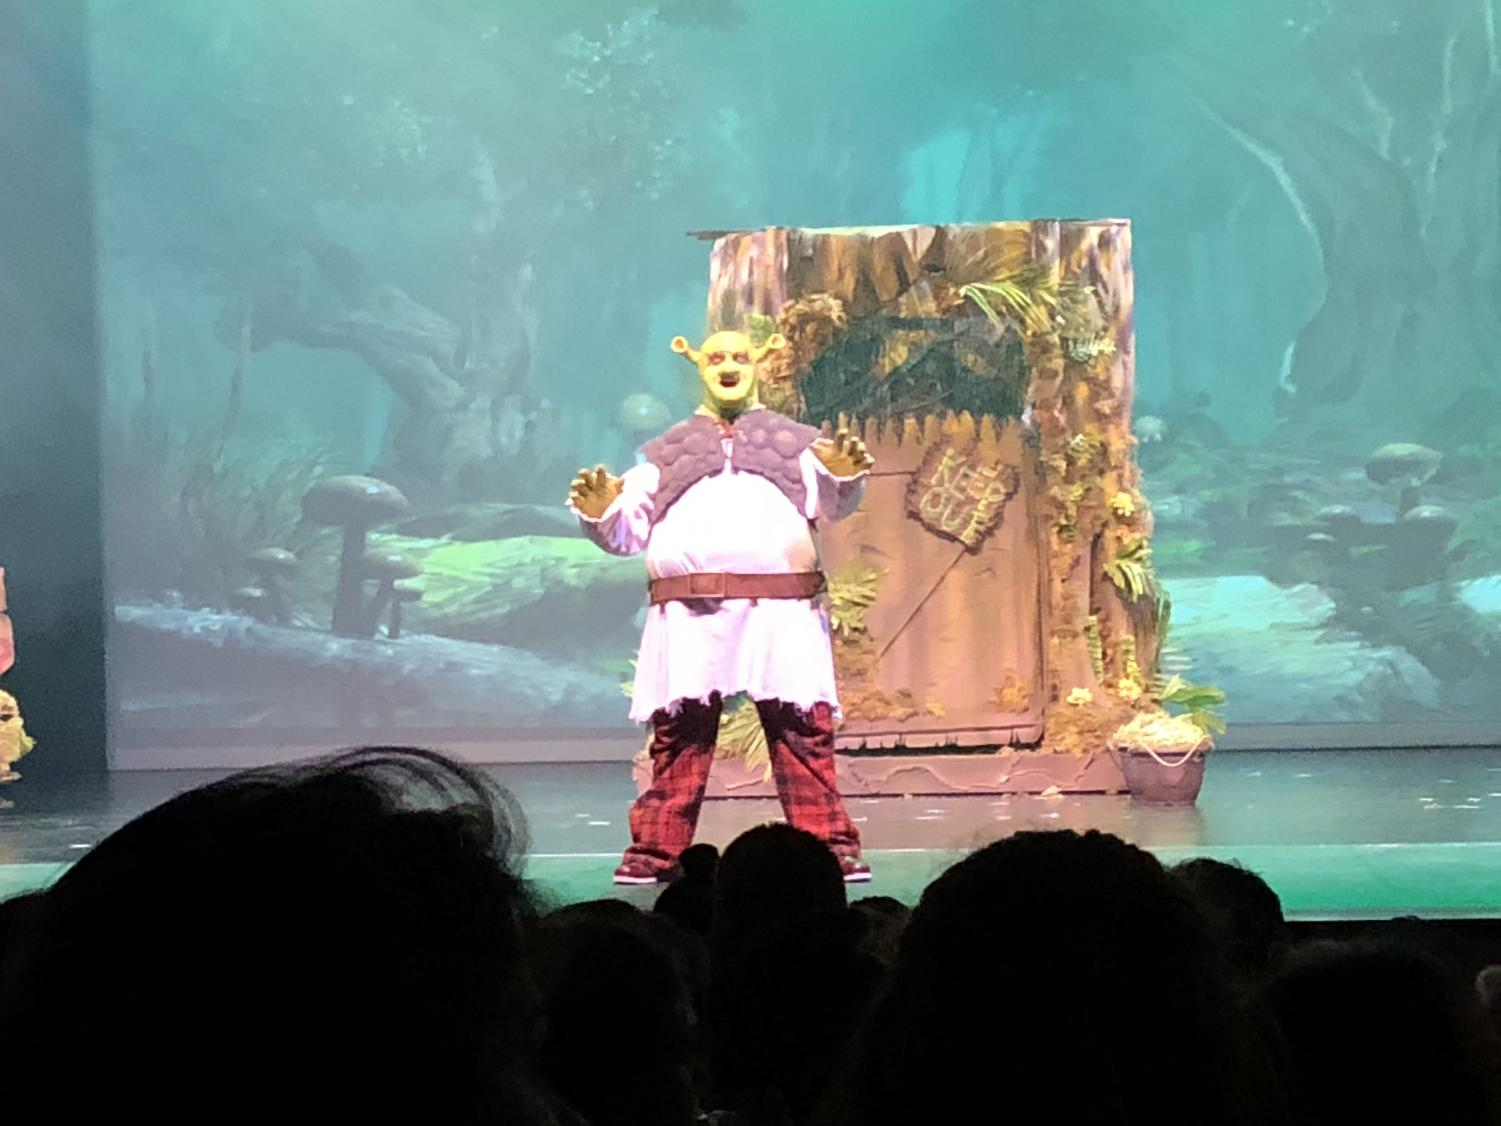 Shrek Opens to Full House. Benjamin Hug as the lovable ogre.